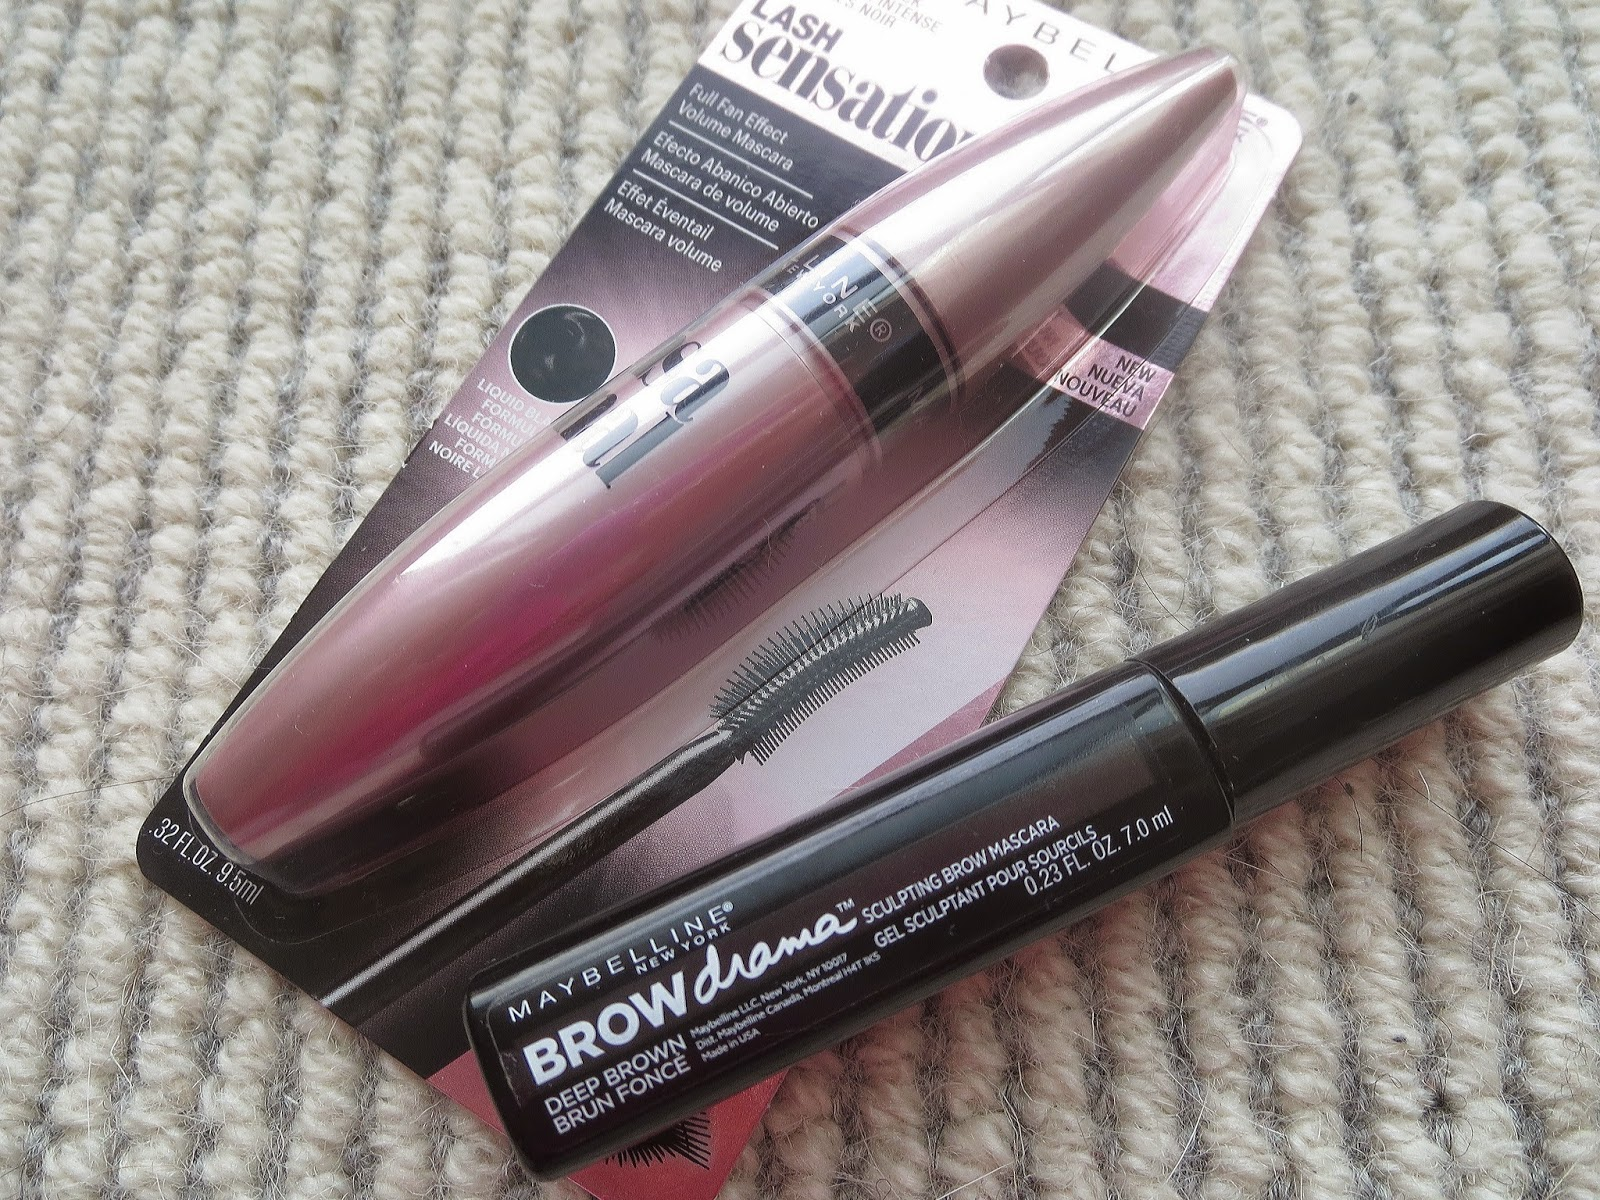 a picture of Maybelline Lash Sensational Mascara & Maybelline Brow Drama Sculpting Brow Masacara